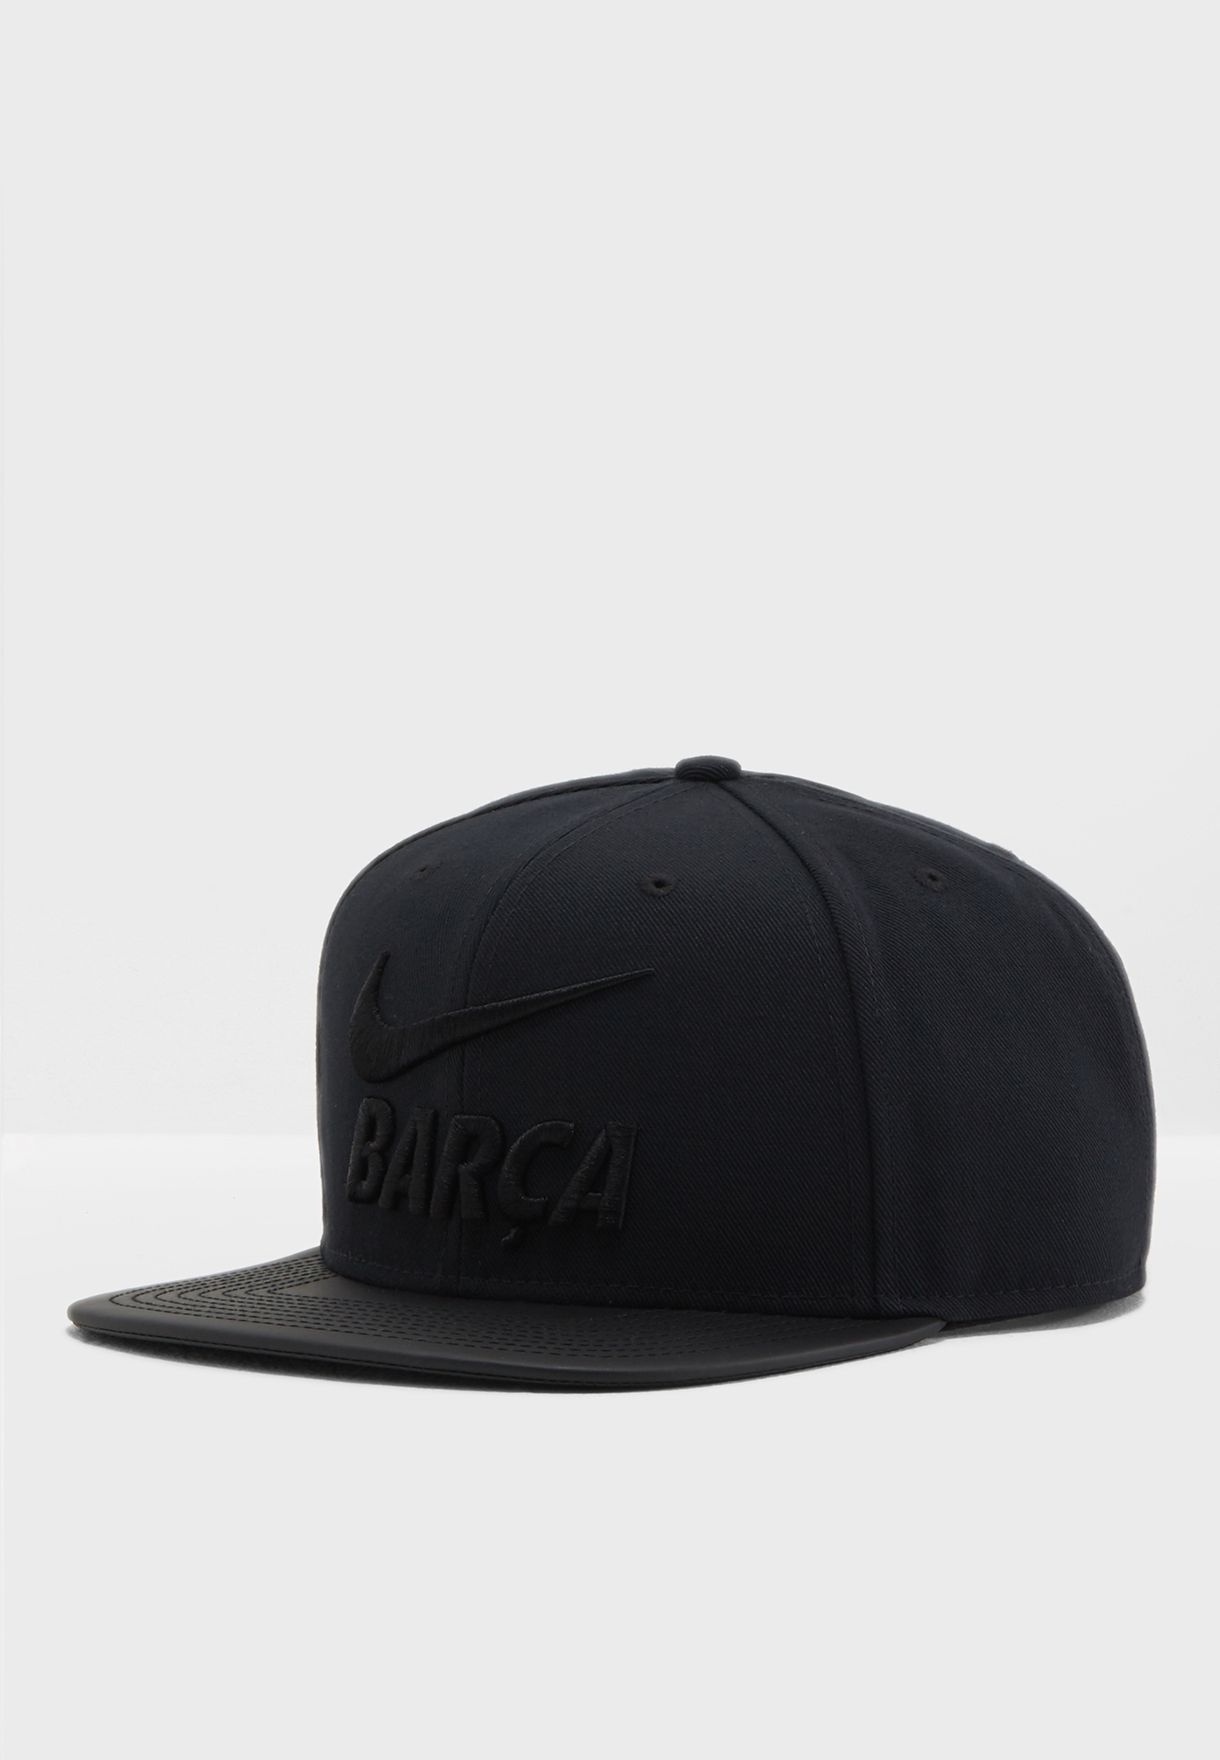 Shop Nike black FC Barcelona Pro Cap 916568-010 for Men in UAE ... 0a790289d9a2